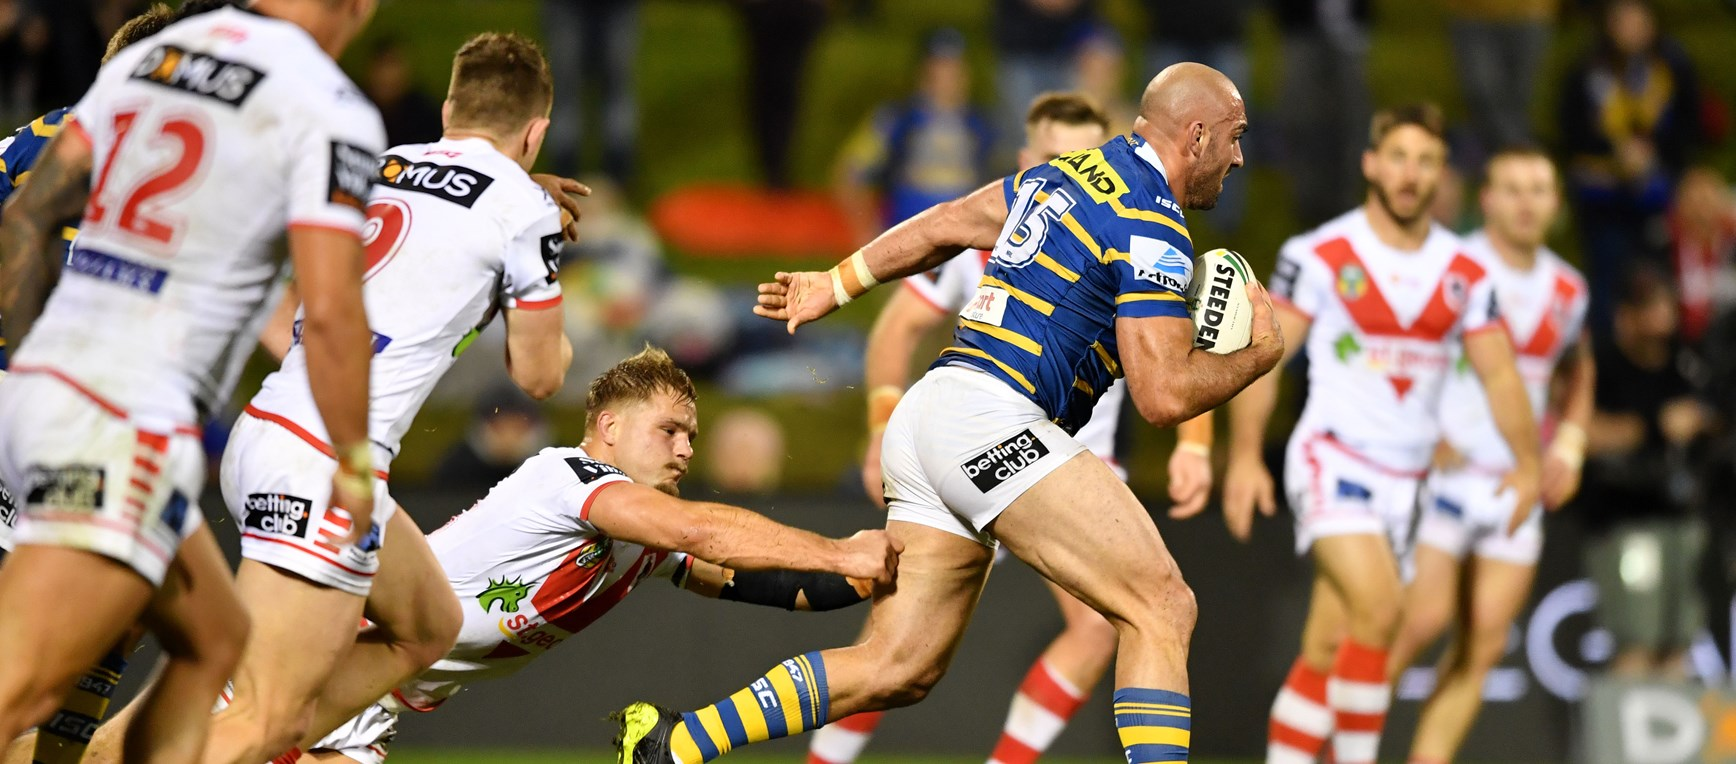 Dragons v Eels, Round 16 in photos